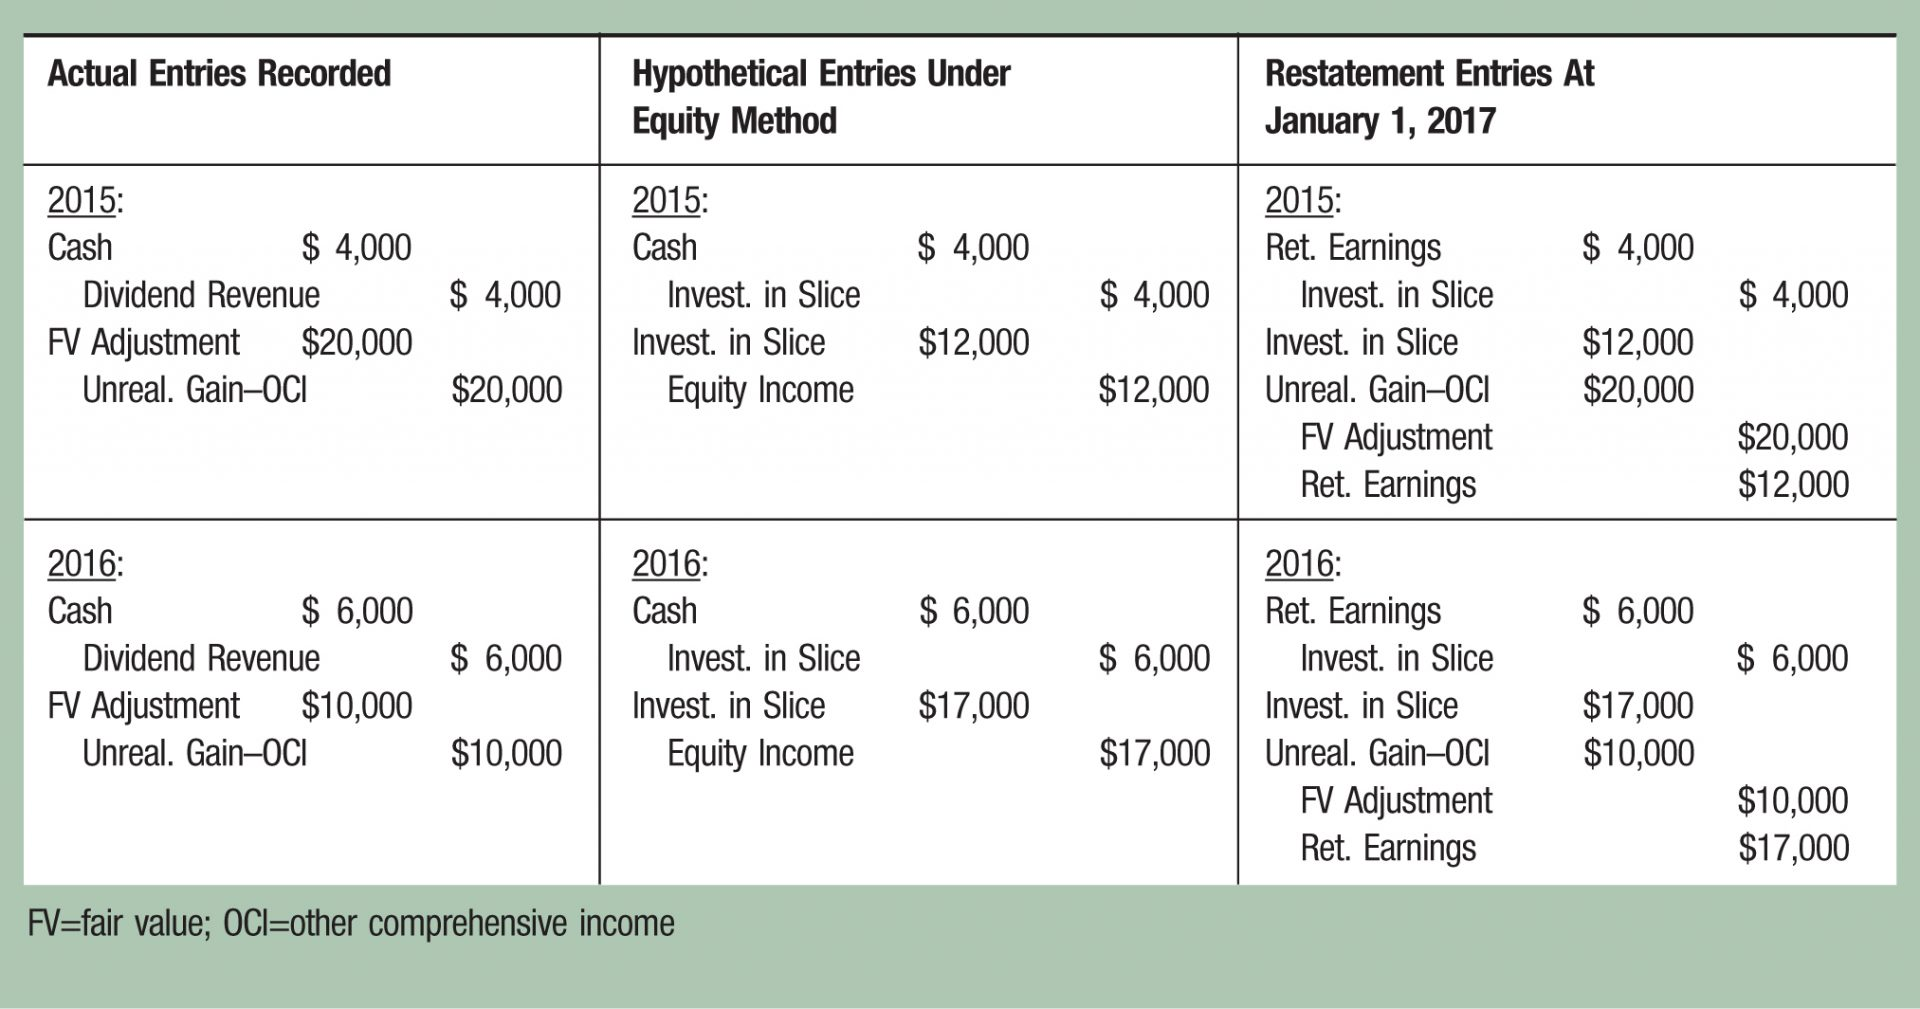 Actual Entries Recorded; Hypothetical Entries Under Equity Method; Restatement Entries At January 1, 2017 2015:; 2015:; 2015: Cash; $ 4,000; Cash; $ 4,000; Ret. Earnings; $ 4,000 Dividend Revenue; $ 4,000; Invest. in Slice; $ 4,000; Invest. in Slice; $ 4,000 FV Adjustment; ,000; Invest. in Slice; ,000; Invest. in Slice; ,000 Unreal. Gain–OCI; ,000; Equity Income; ,000; Unreal. Gain–OCI; ,000 FV Adjustment; ,000; Ret. Earnings; ,000 2016:; 2016:; 2016: Cash; $ 6,000; Cash; $ 6,000; Ret. Earnings; $ 6,000 Dividend Revenue; $ 6,000; Invest. in Slice; $ 6,000; Invest. in Slice; $ 6,000 FV Adjustment; ,000; Invest. in Slice; ,000; Invest. in Slice; ,000 Unreal. Gain–OCI; ,000; Equity Income; ,000; Unreal. Gain–OCI; ,000 FV Adjustment; ,000; Ret. Earnings; ,000 FV =fair value; OCI=other comprehensive income